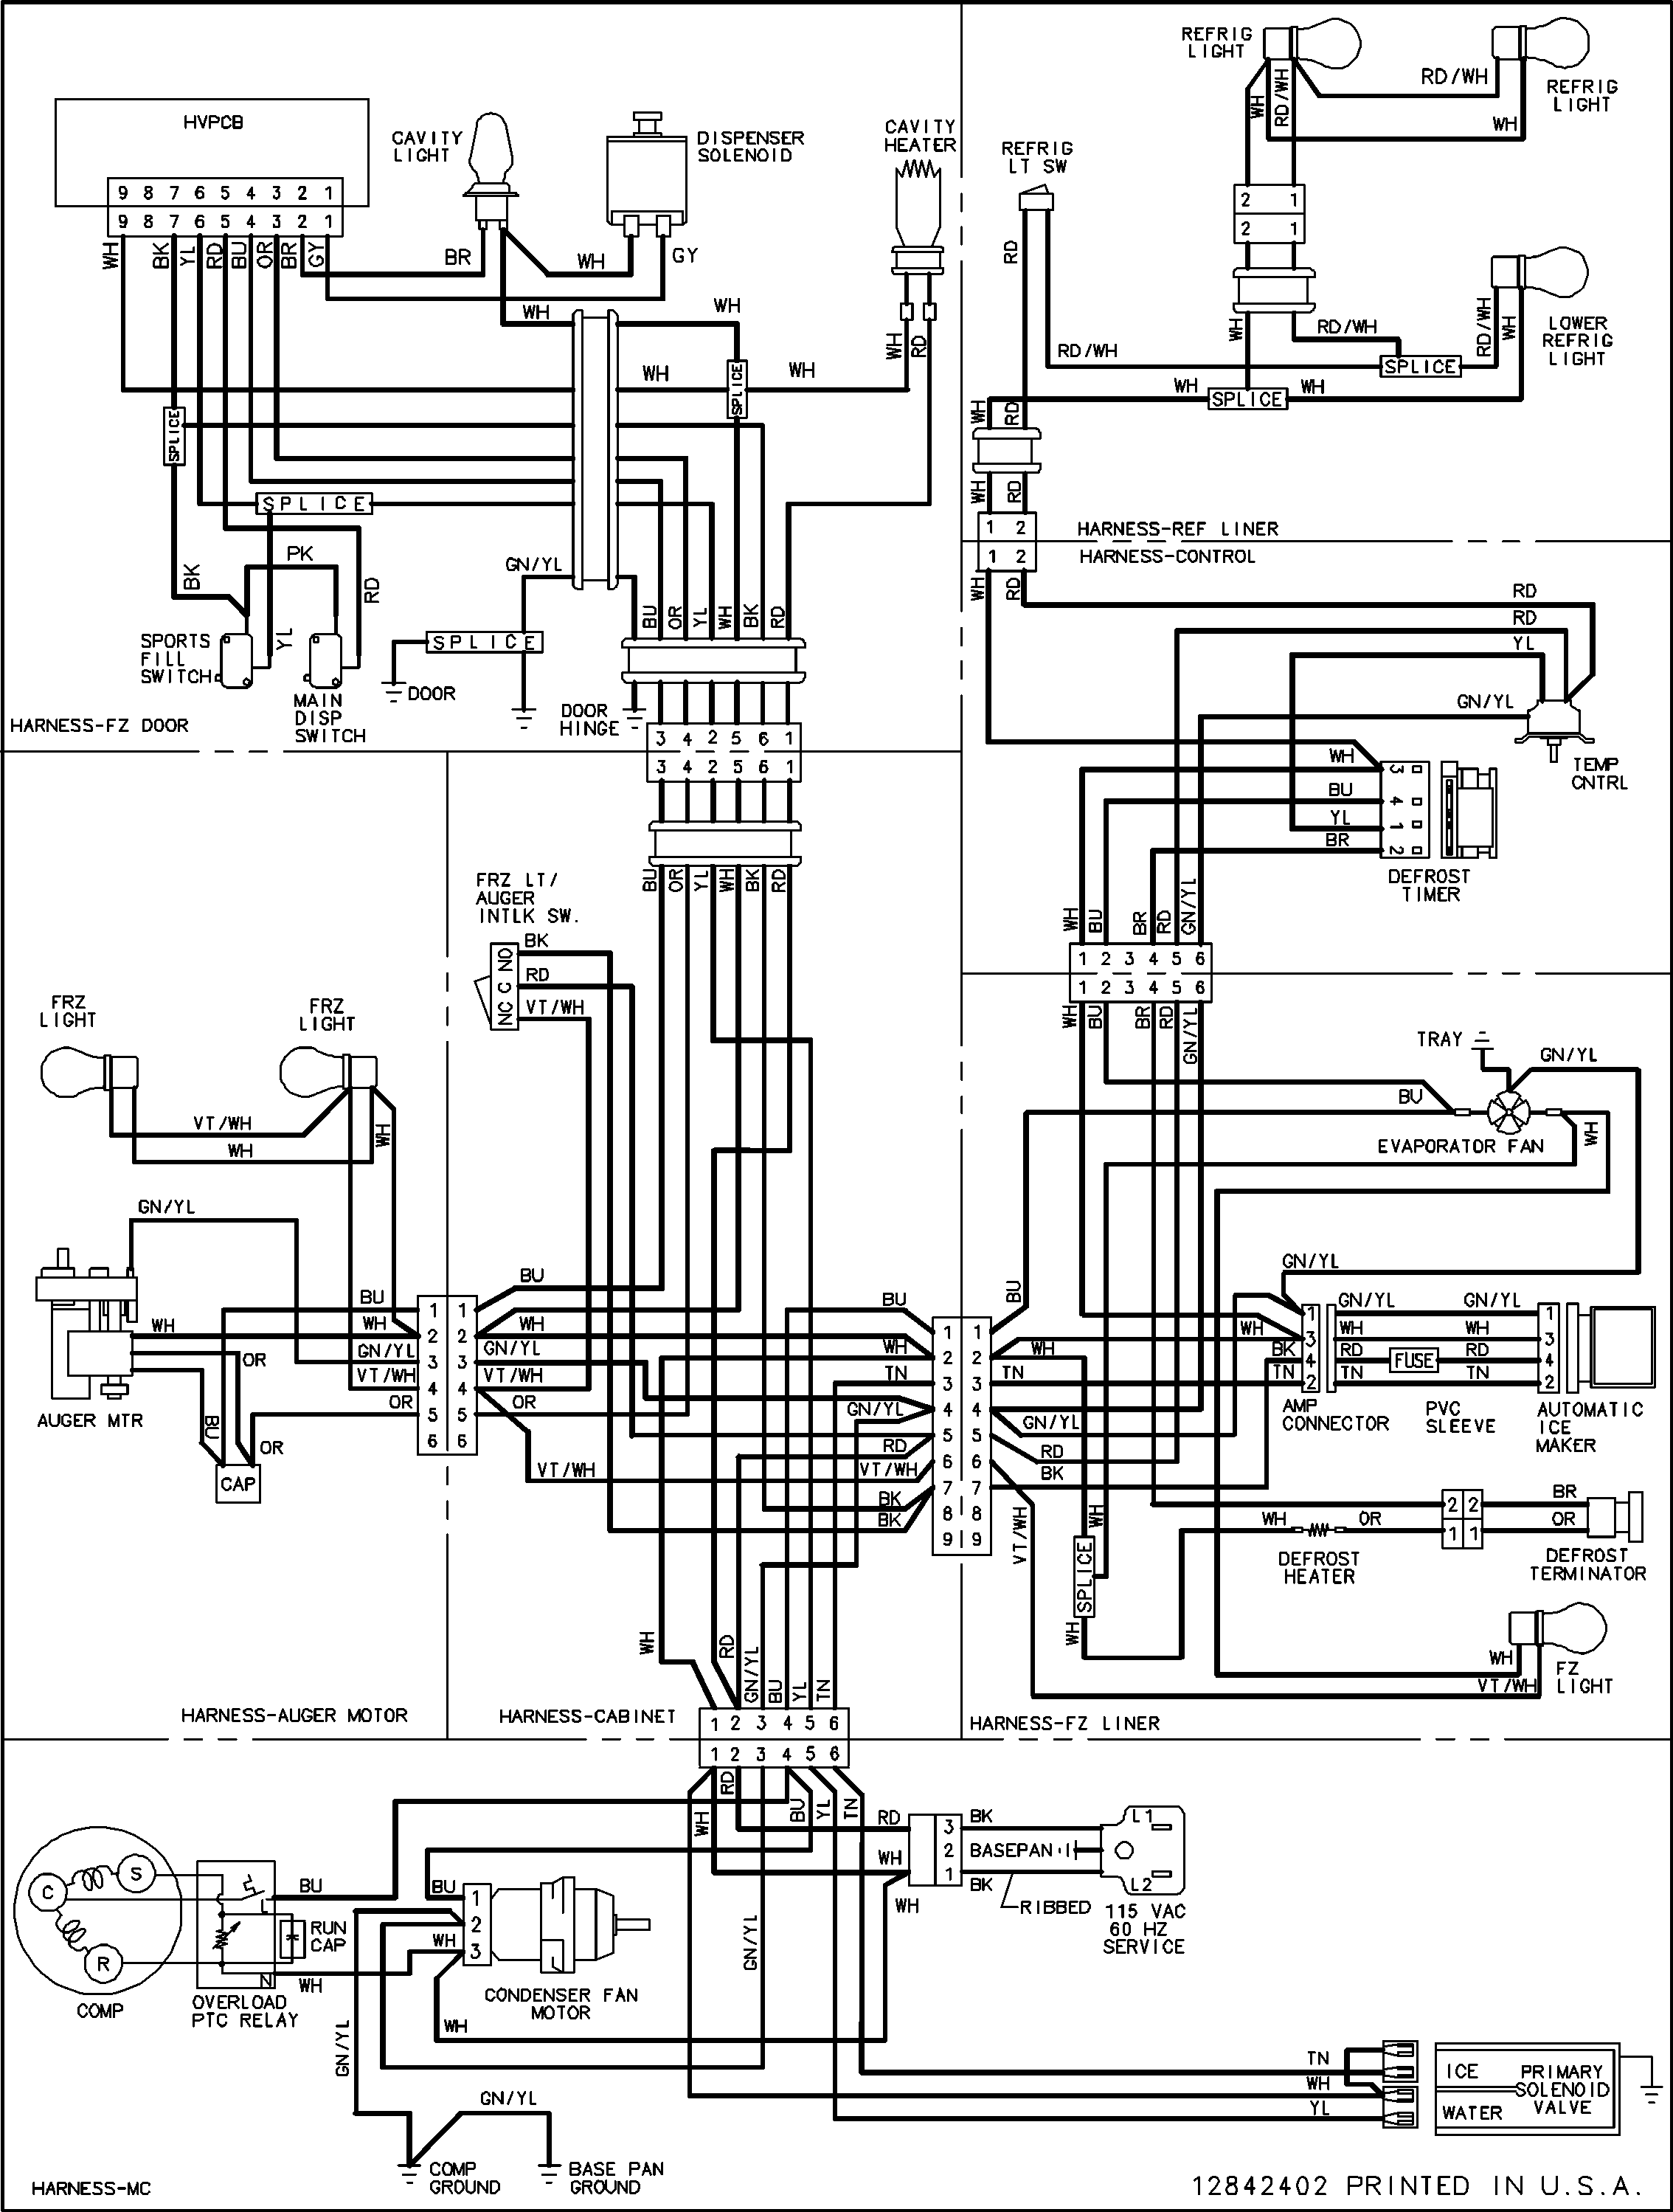 M0608085 00036?resize\\\\\\\\\\\\\\\\\\\\\\\\\\\=665%2C878 gryphon ac compressor wiring schematic brook motor company brook  at readyjetset.co